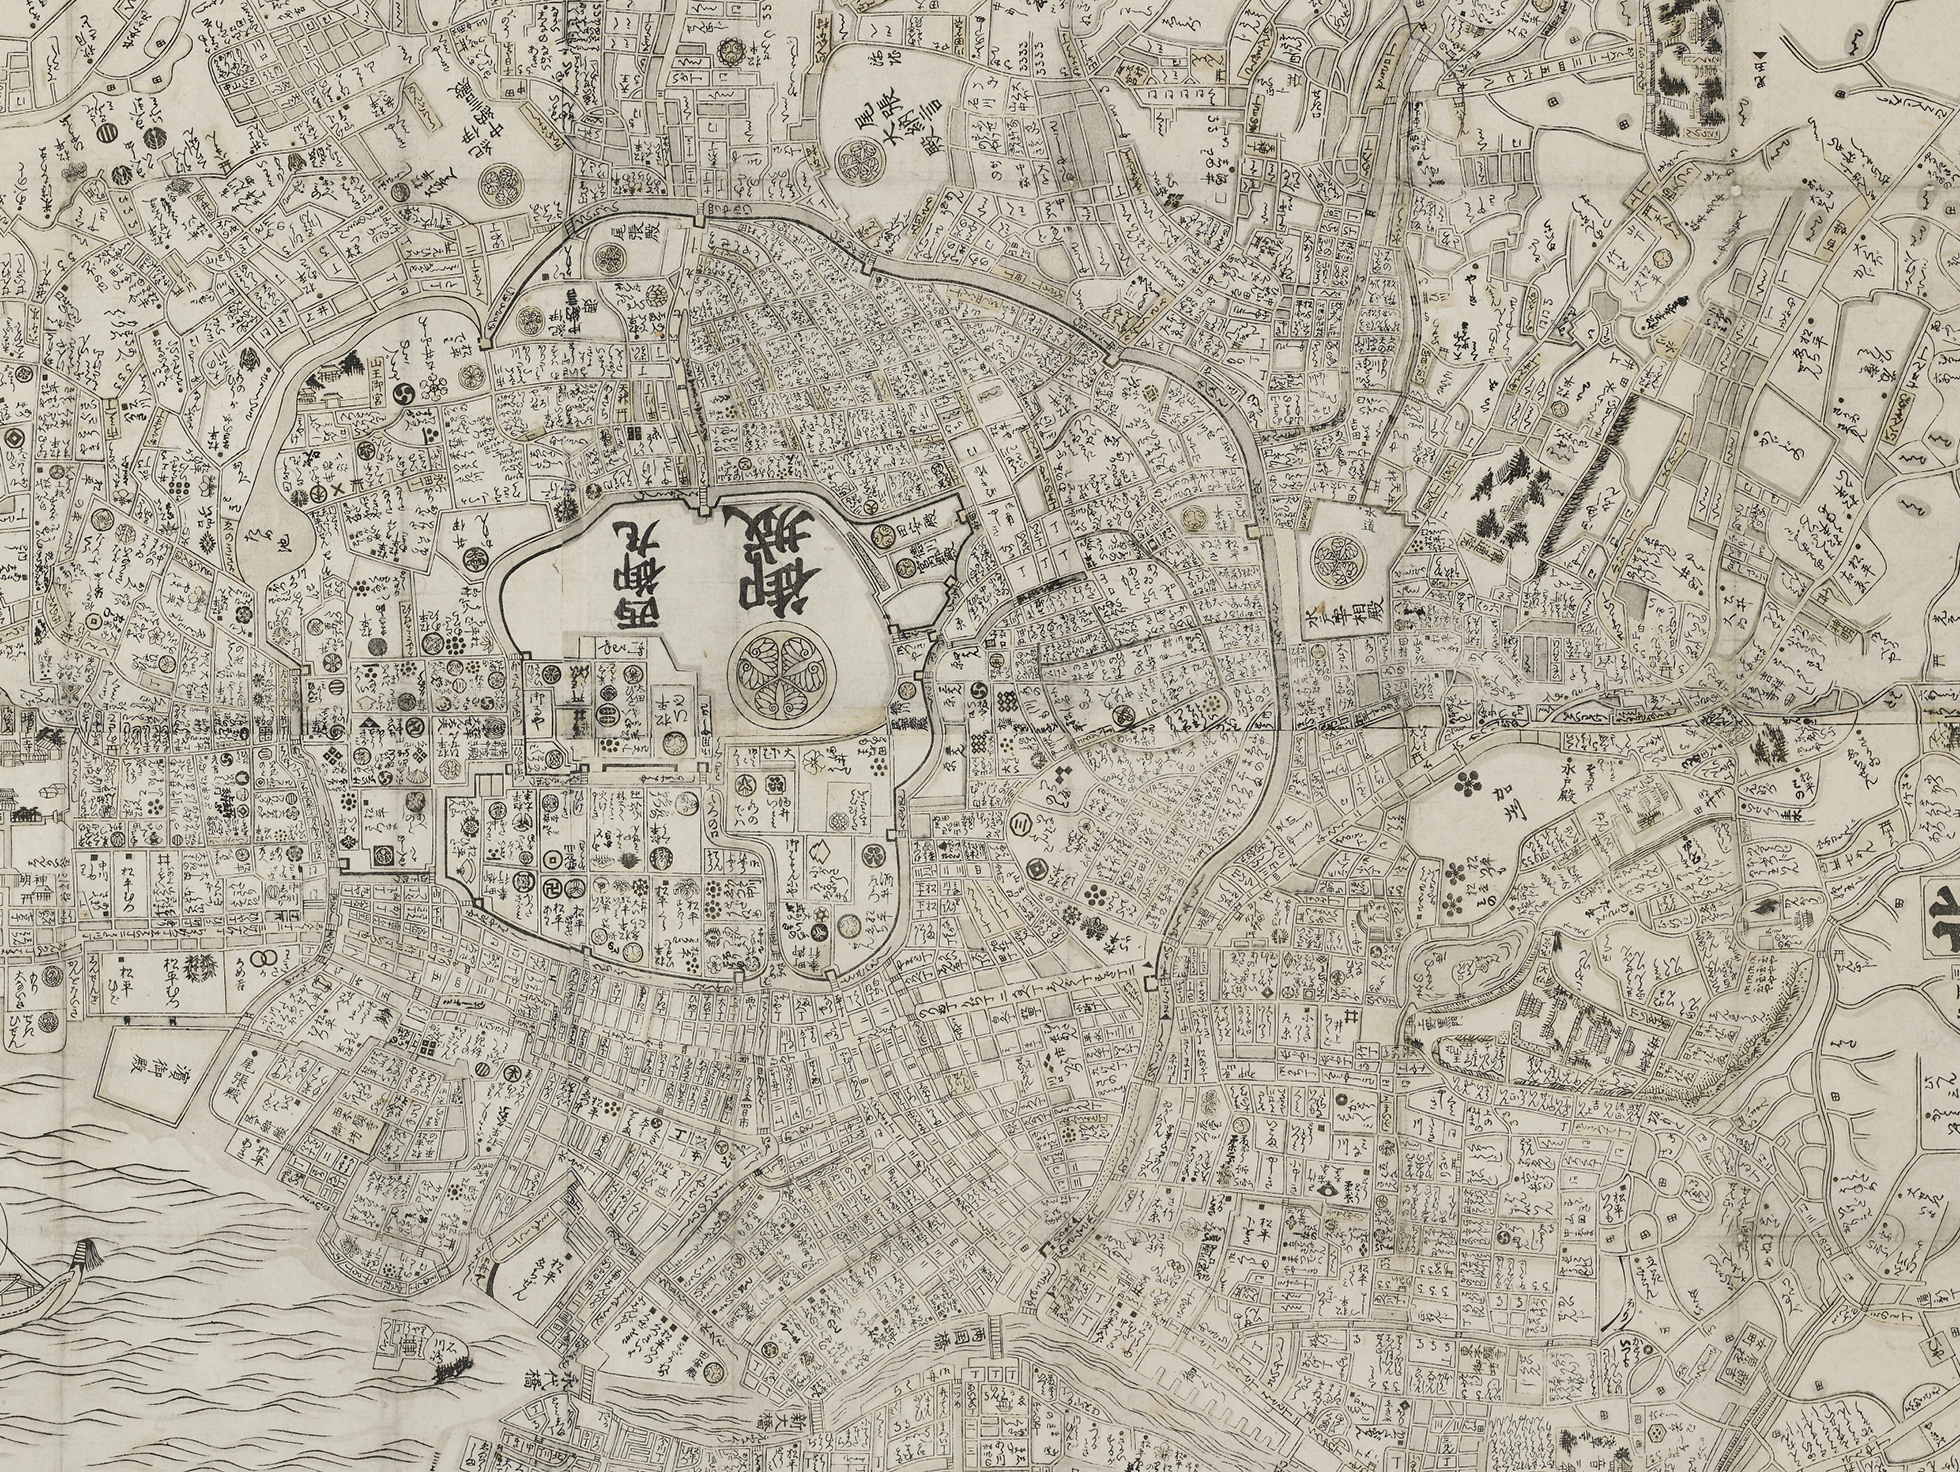 A woodblock print of a map of Edo, shown from above. The network of canals rings the city.